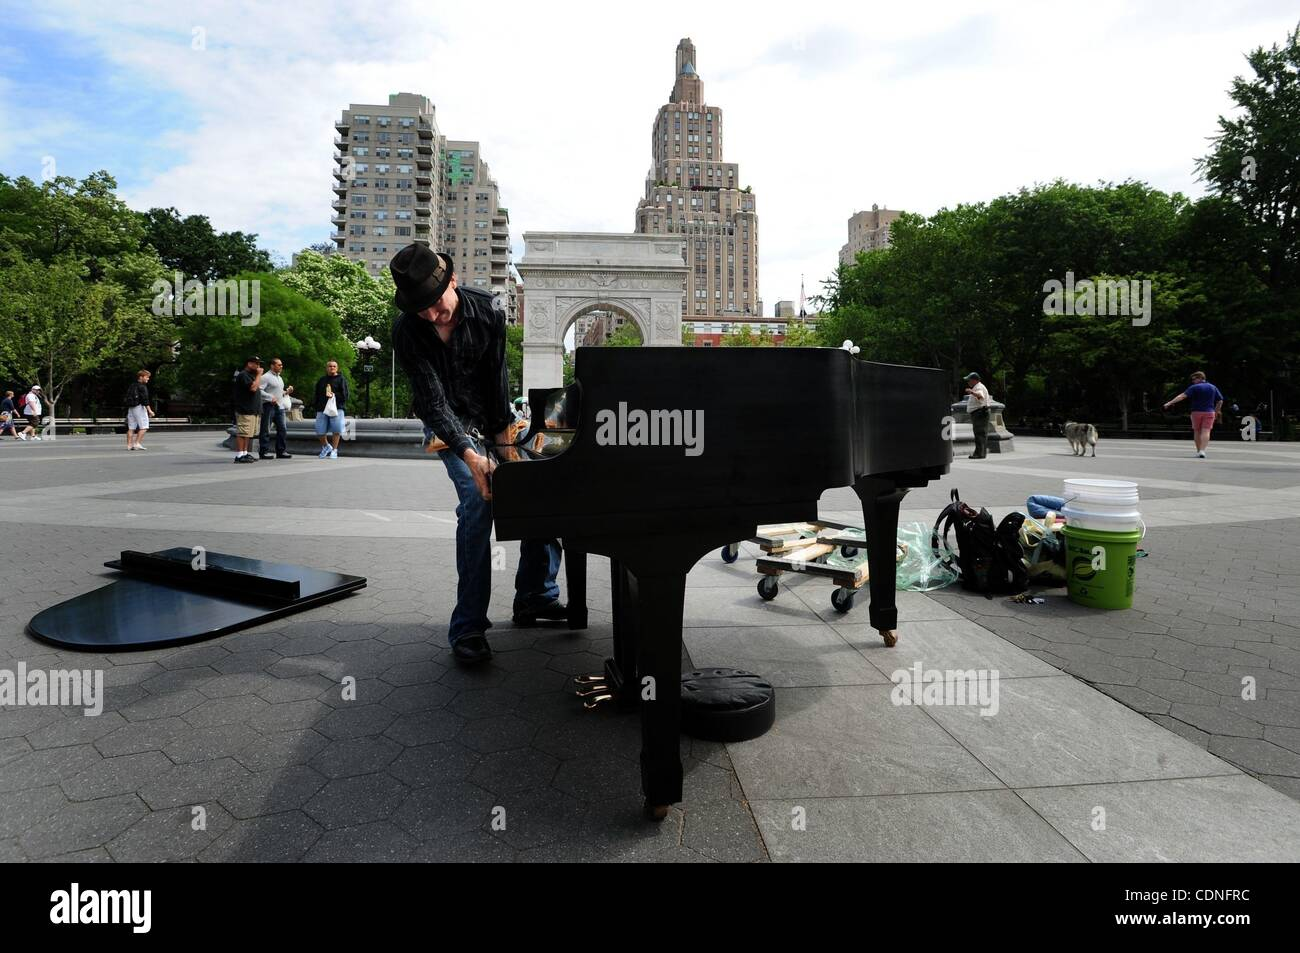 June 4, 2011 - Manhattan, New York, U.S. - Colin sets up the piano in Washington Square Park. COLIN HUGGINS of The - Stock Image